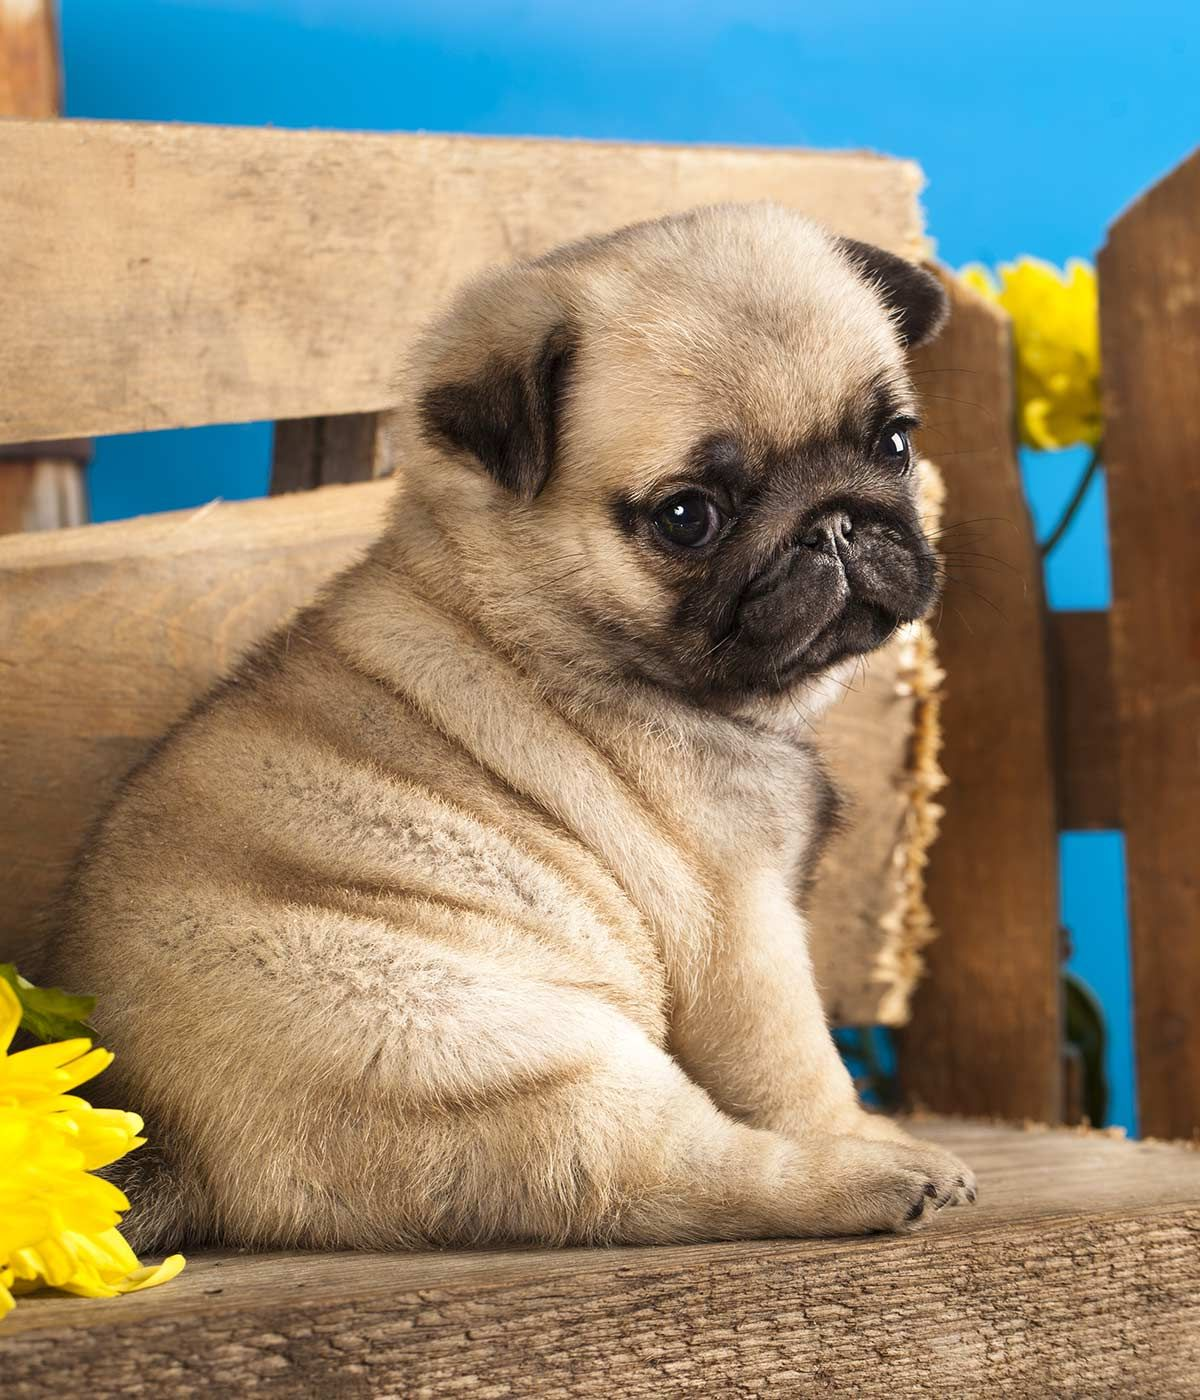 Best Food For Pug Puppies Tasty Healthy Choices Pug Puppies